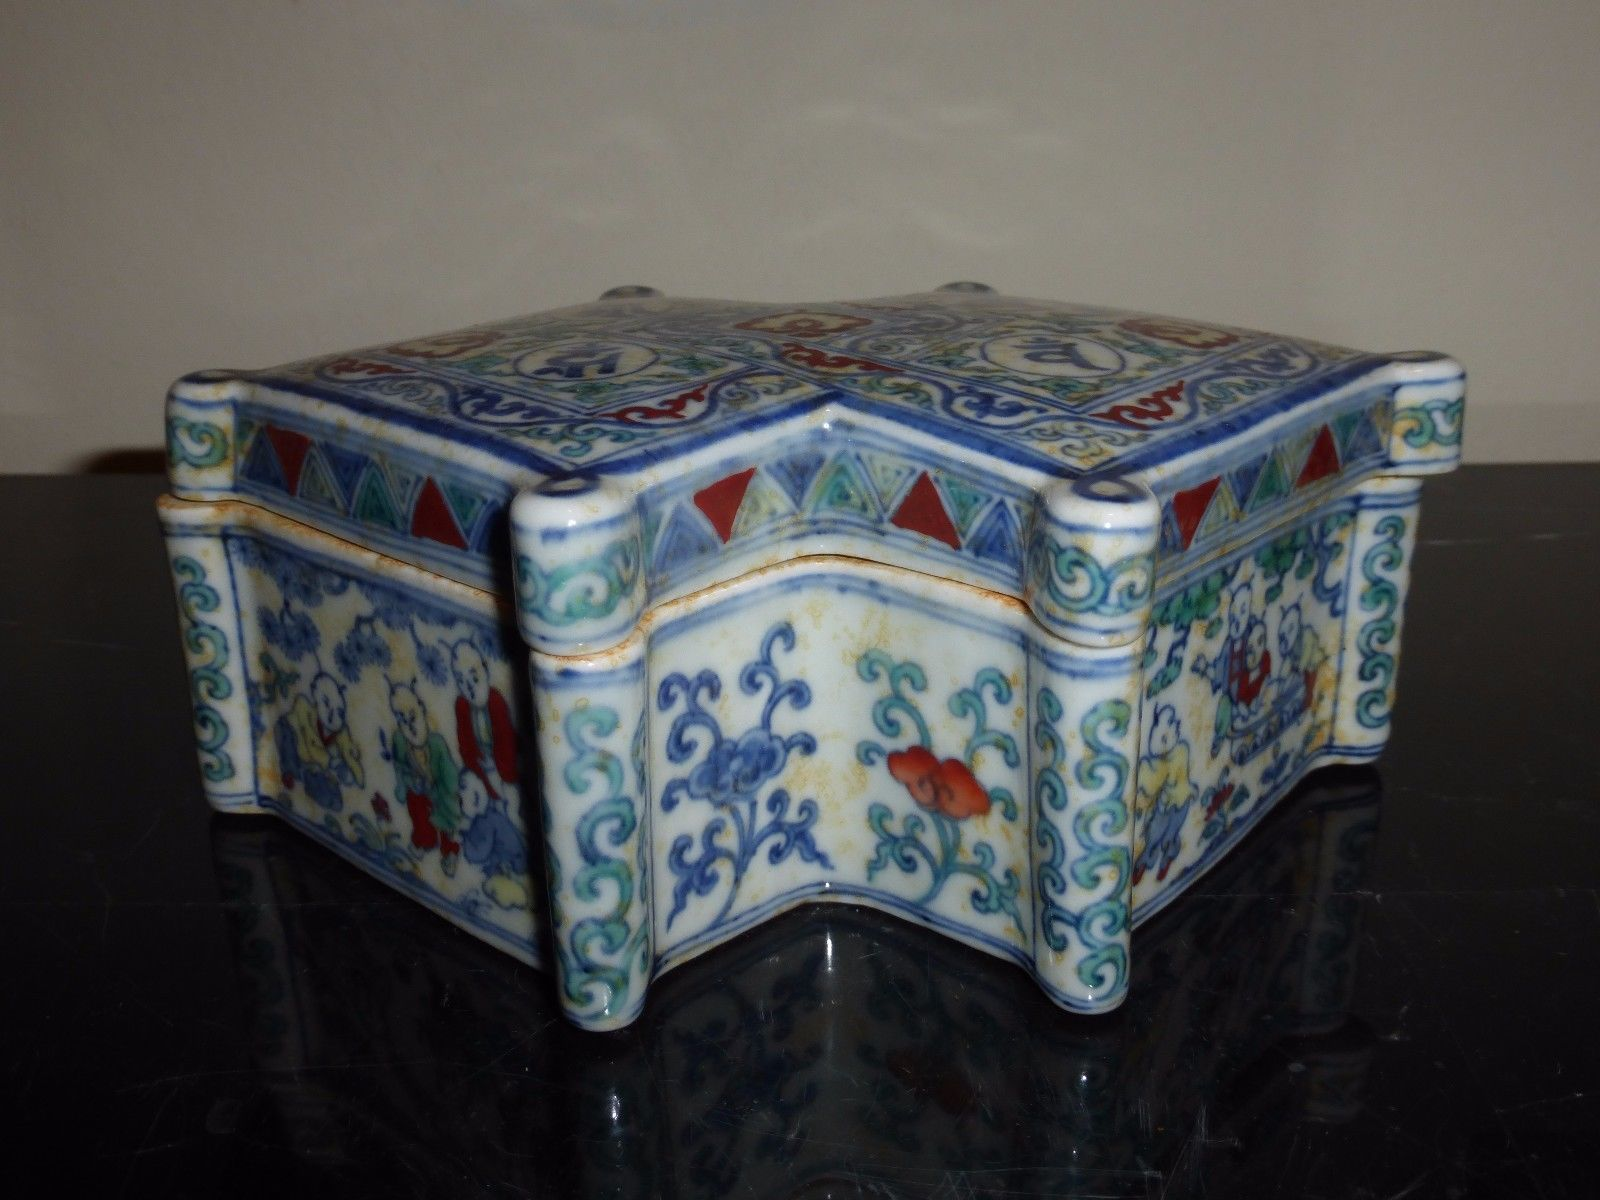 ANTIQUE FINE AND RARE MING DYNASTY CHENGHUA COVERED BOX SIX-CHARACTER BLUE MARK